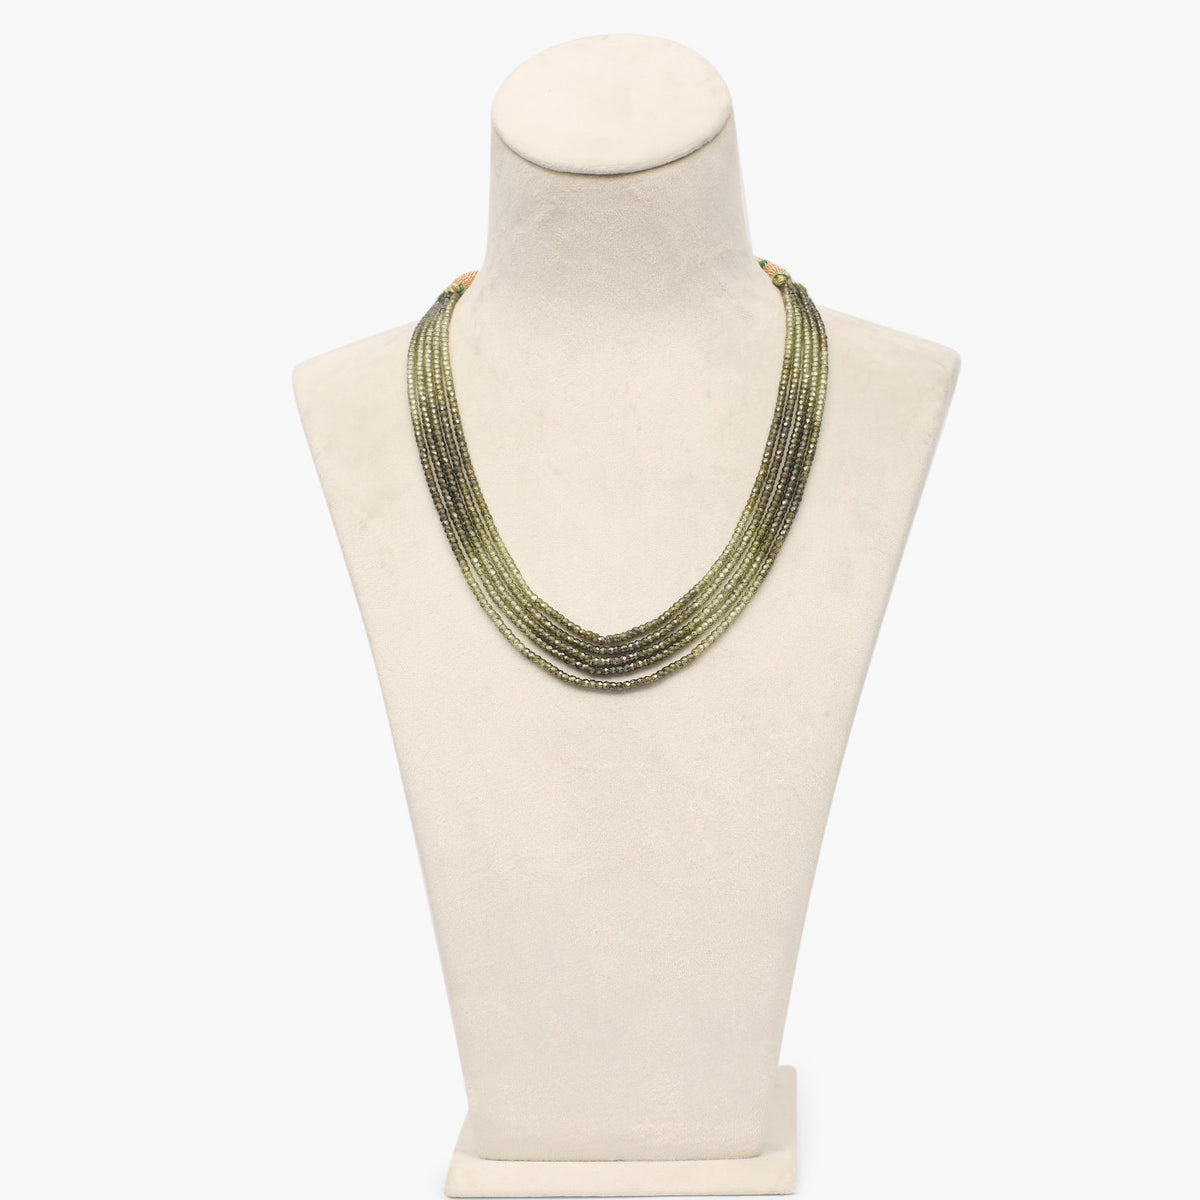 Dark Olive Cubic Zirconia Faceted Beads Necklace